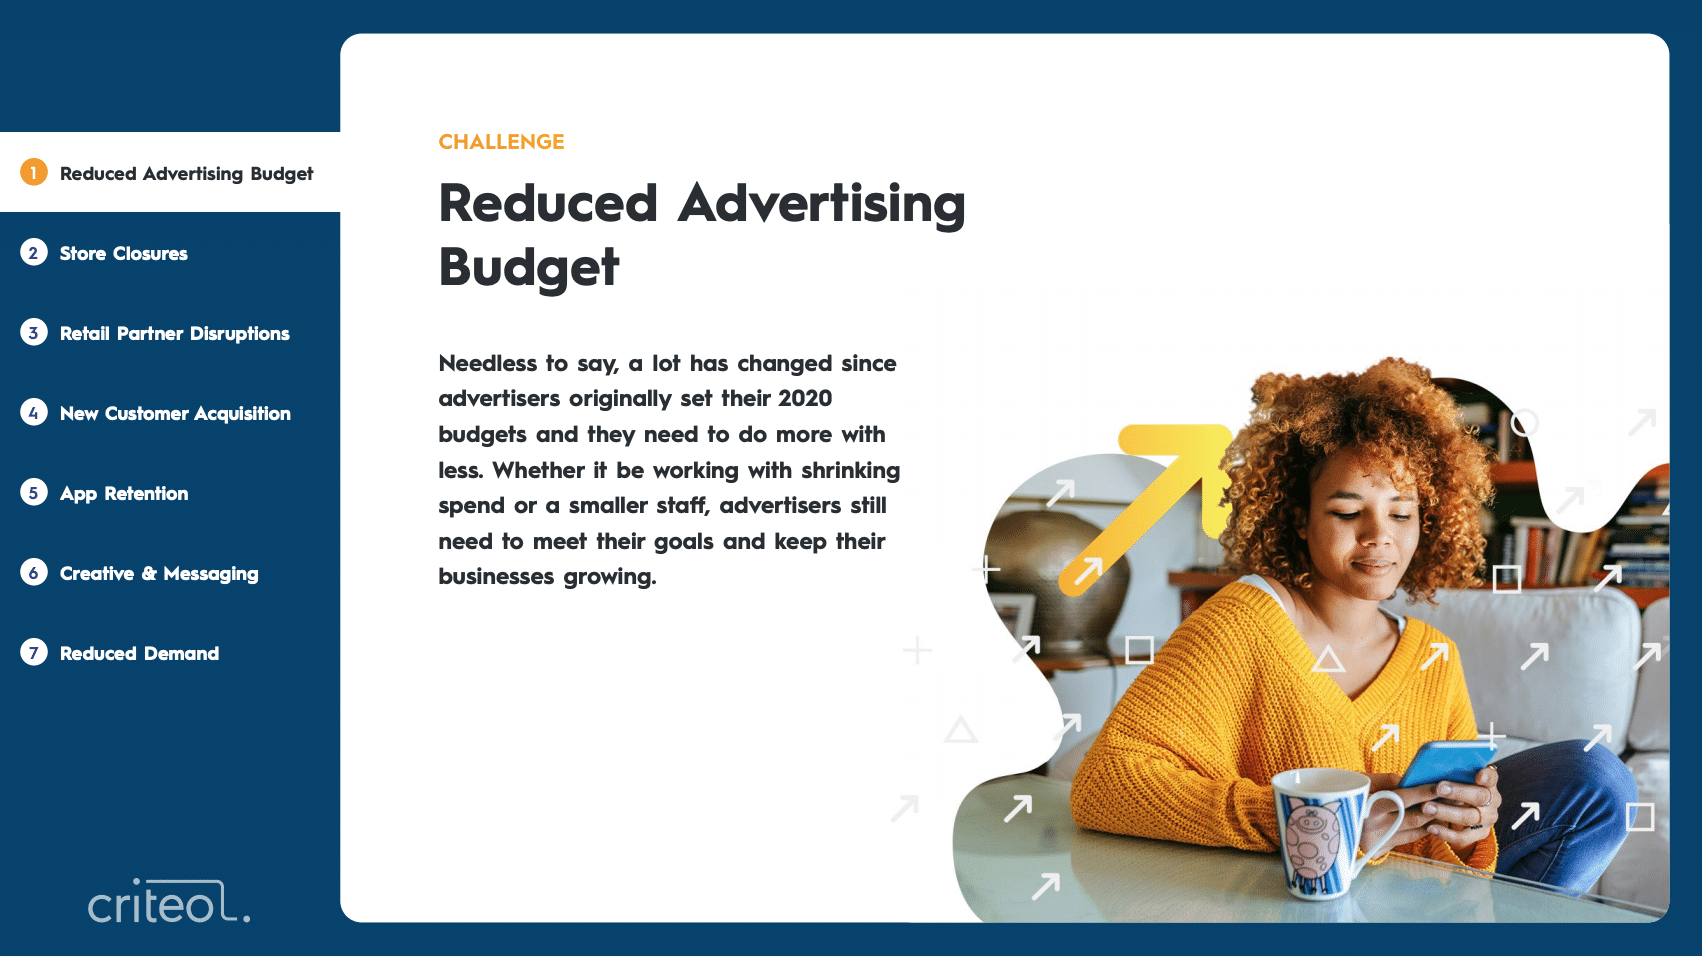 Challenge: Reduced Advertising Budget. Needless to say, a lot has changed since advertisers originally set their 2020 budgets and they need to do more with less. Whether it be working with shrinking spend or a smaller staff, advertisers still need to meet their goals and keep their businesses growing.